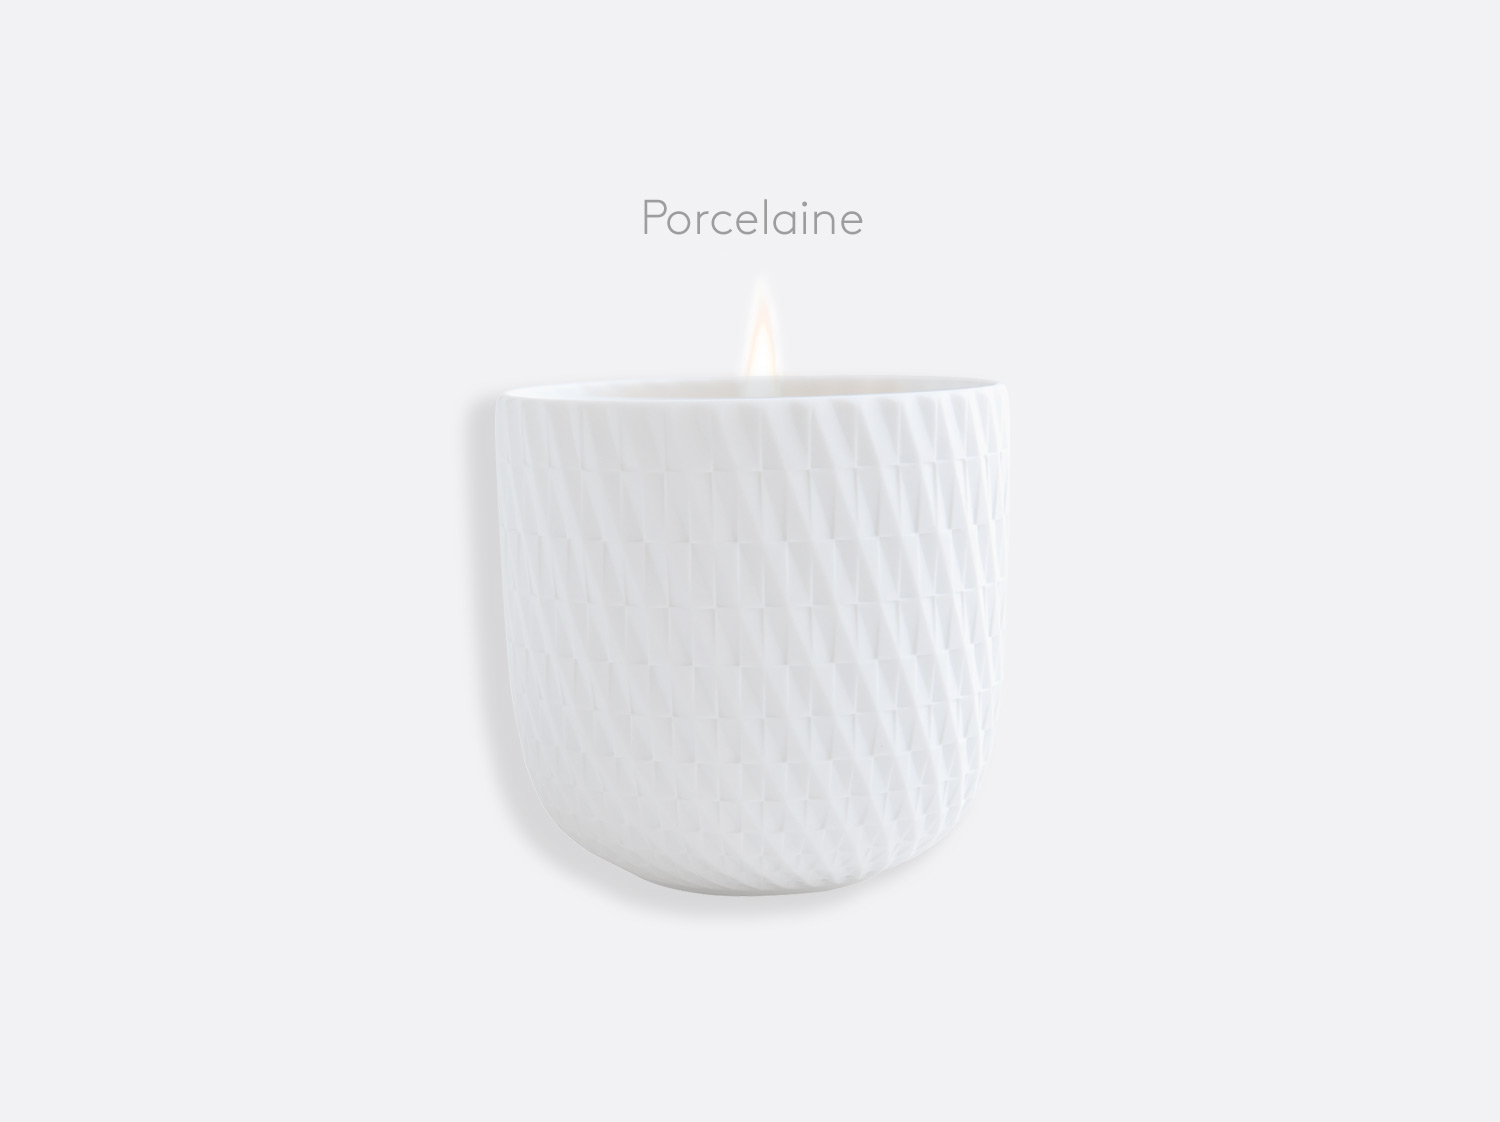 "Pot à bougie 200g rechargeable en biscuit gravé ""Porcelaine"" en porcelaine de la collection TWIST Bernardaud"